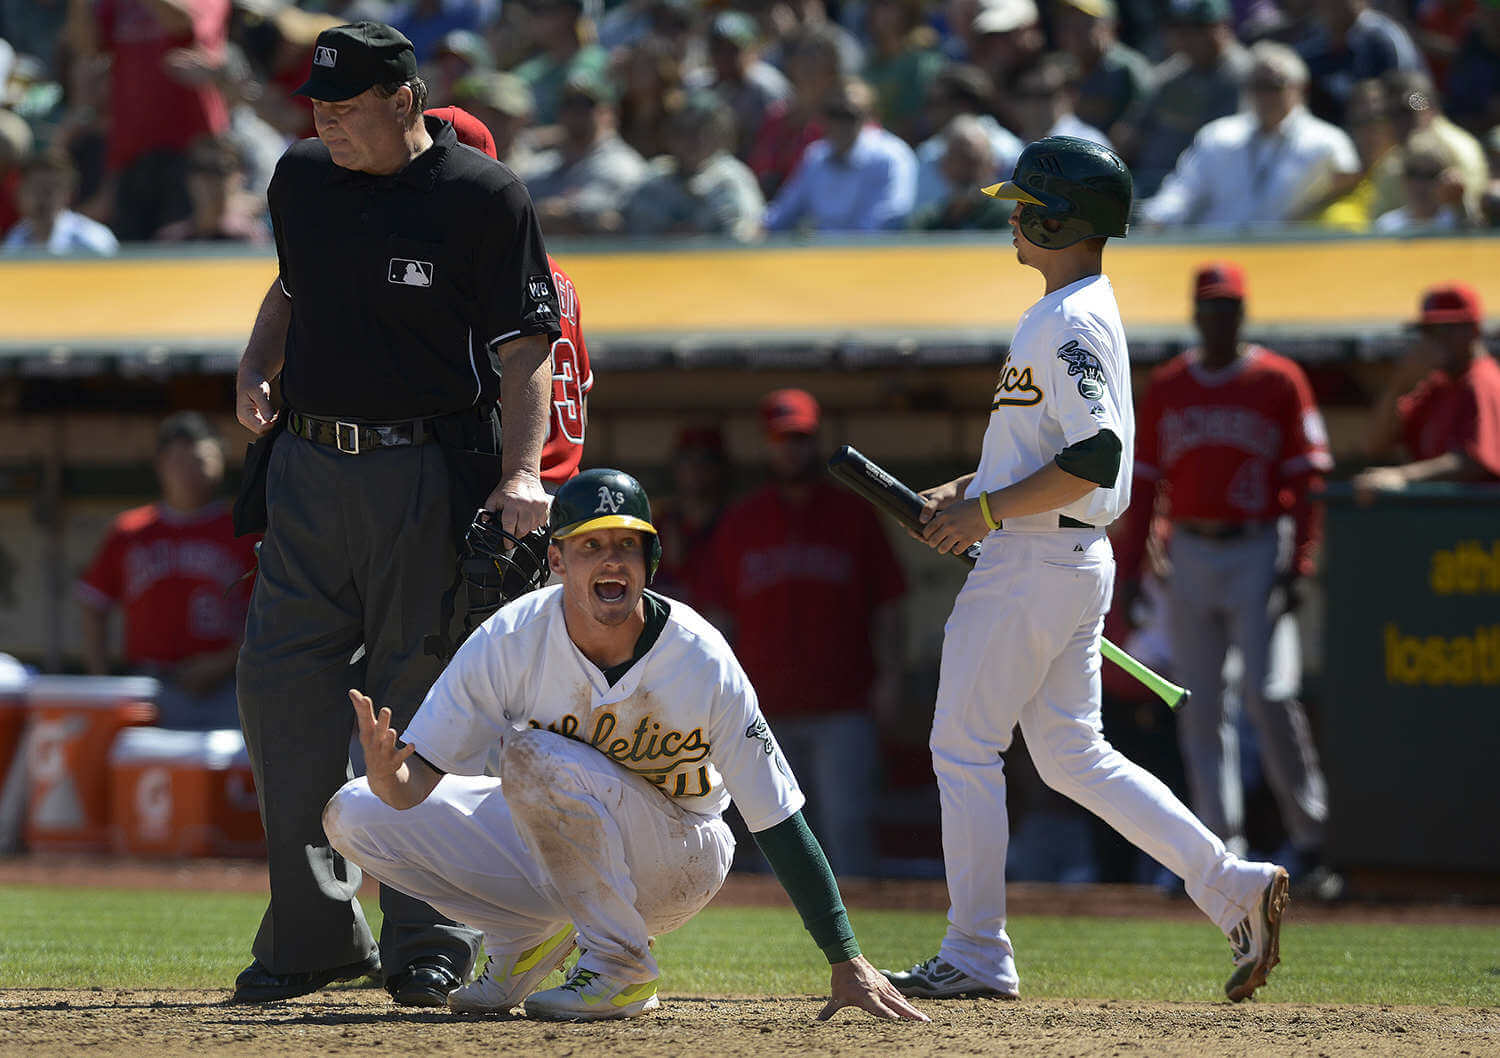 Oakland A's vs Los Angeles Angels